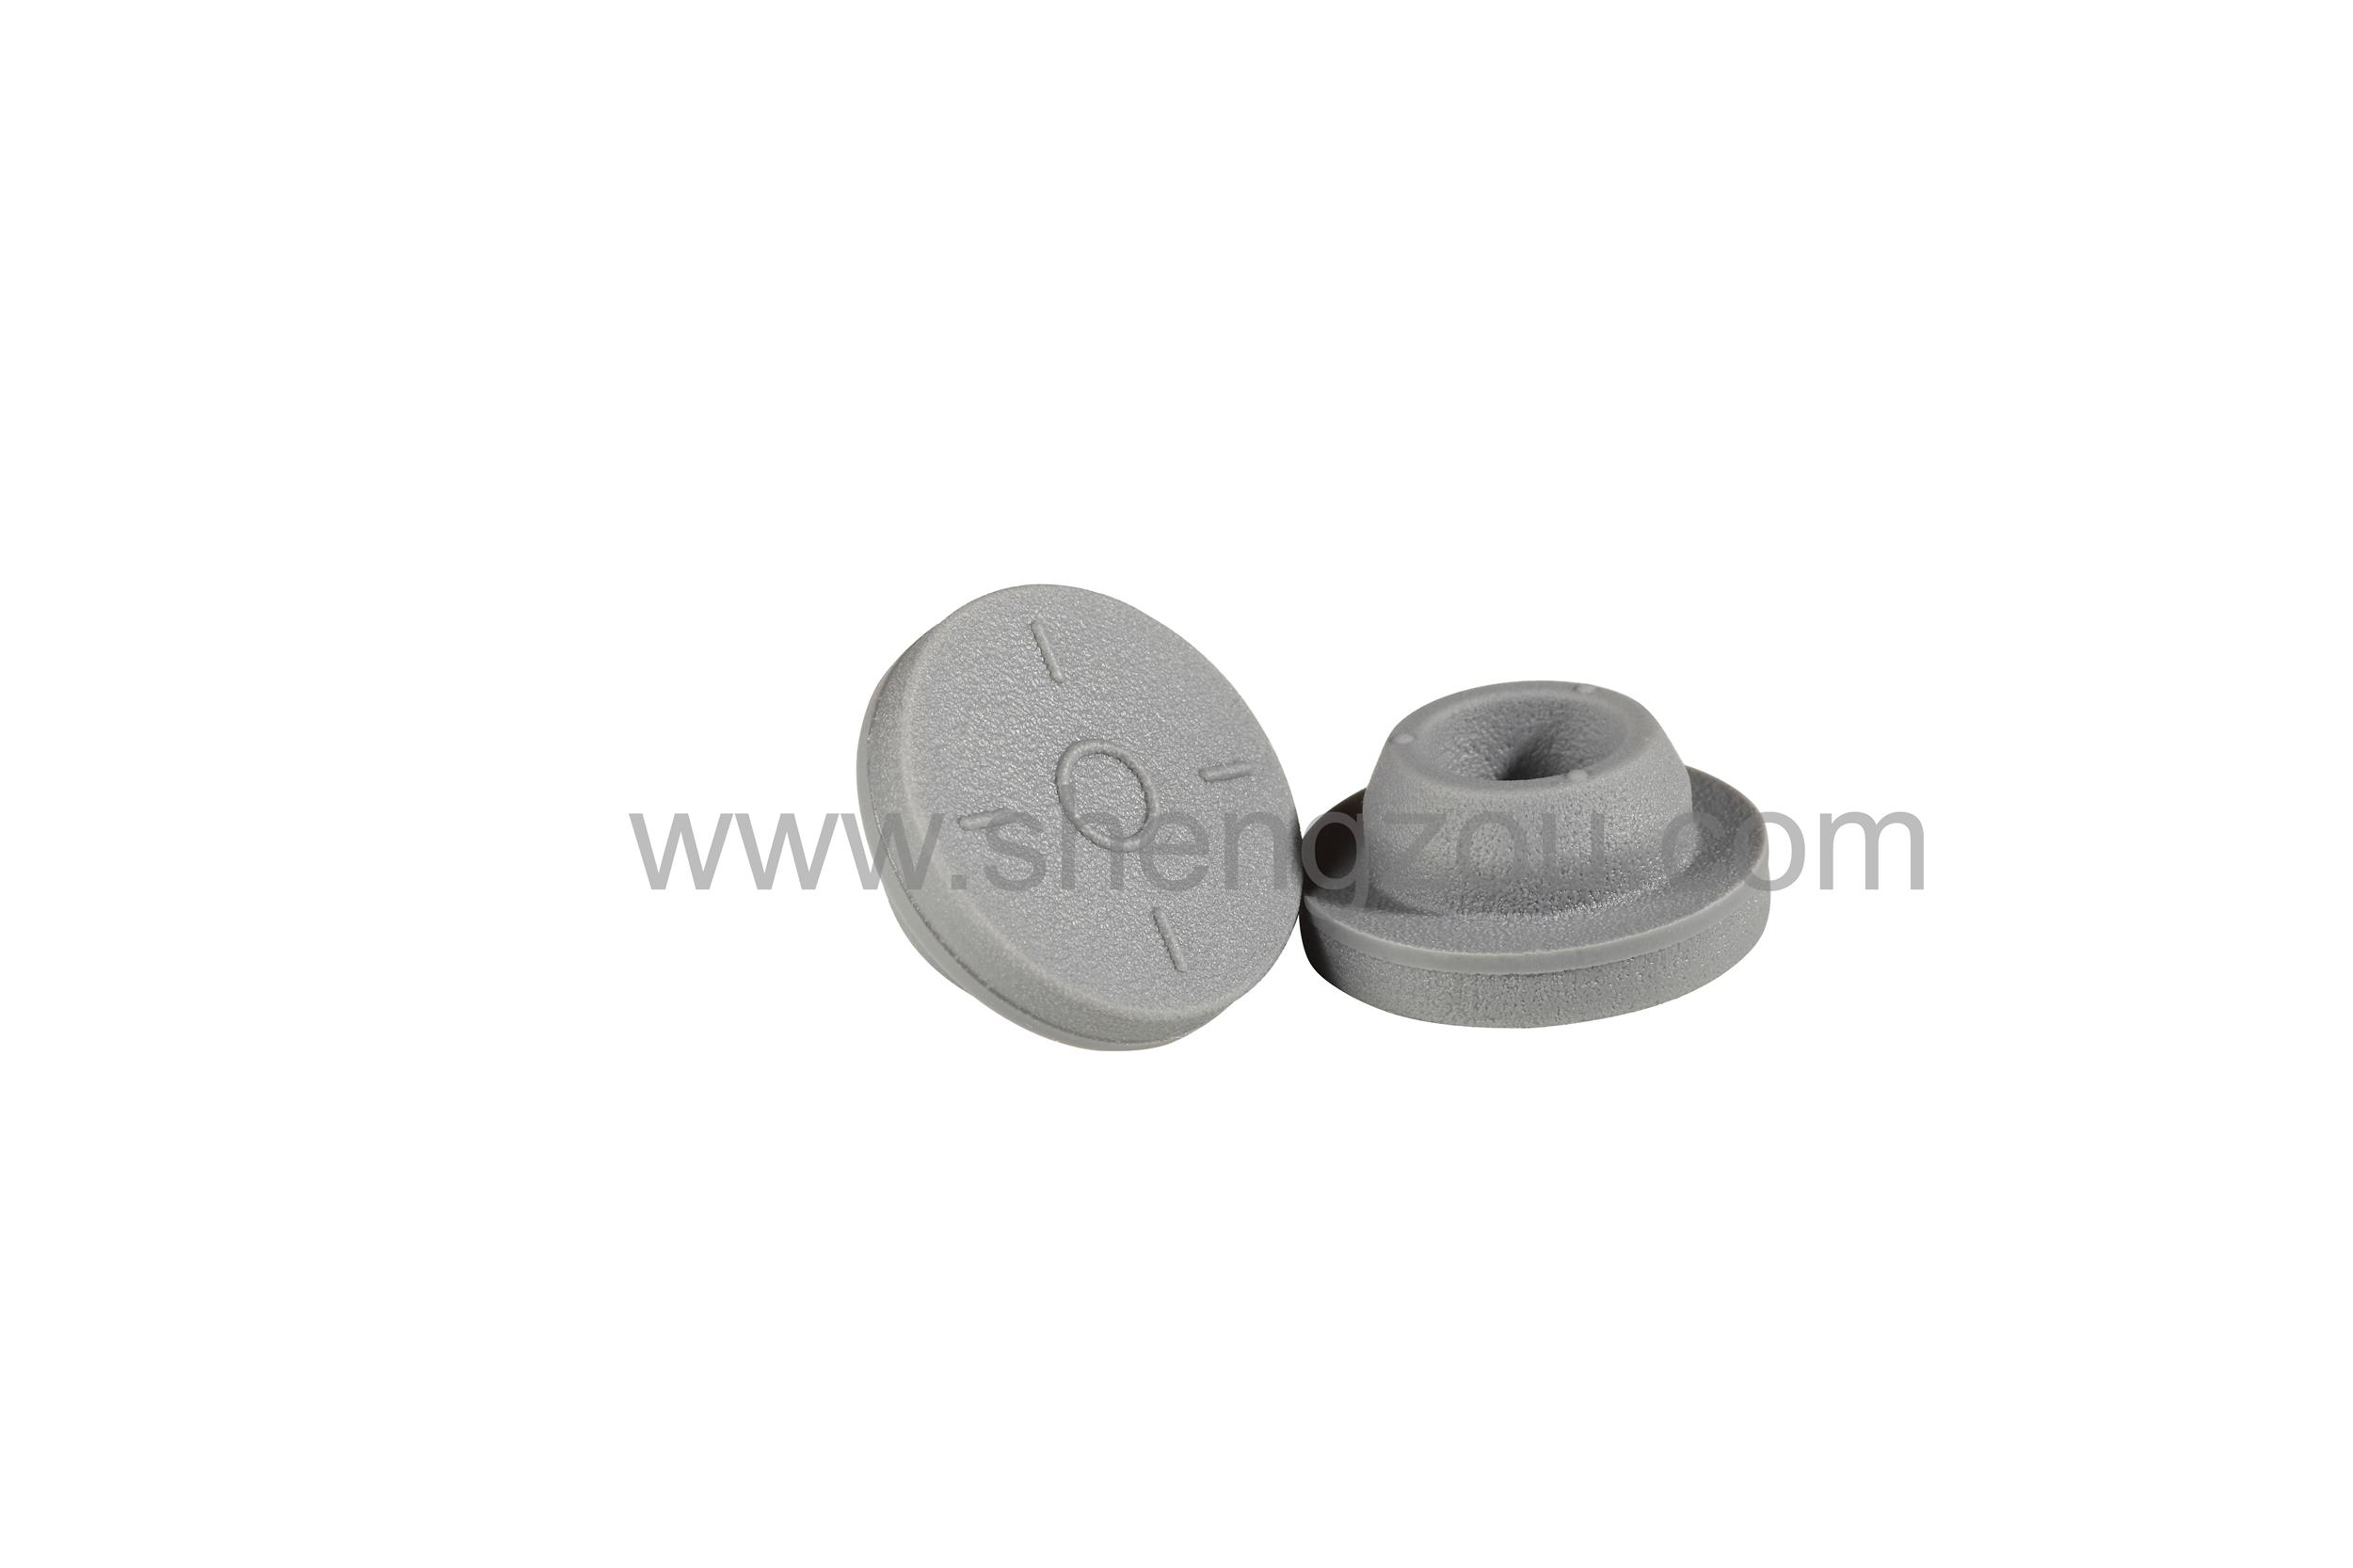 Shengzou Rubber Stoppers (International Standard)